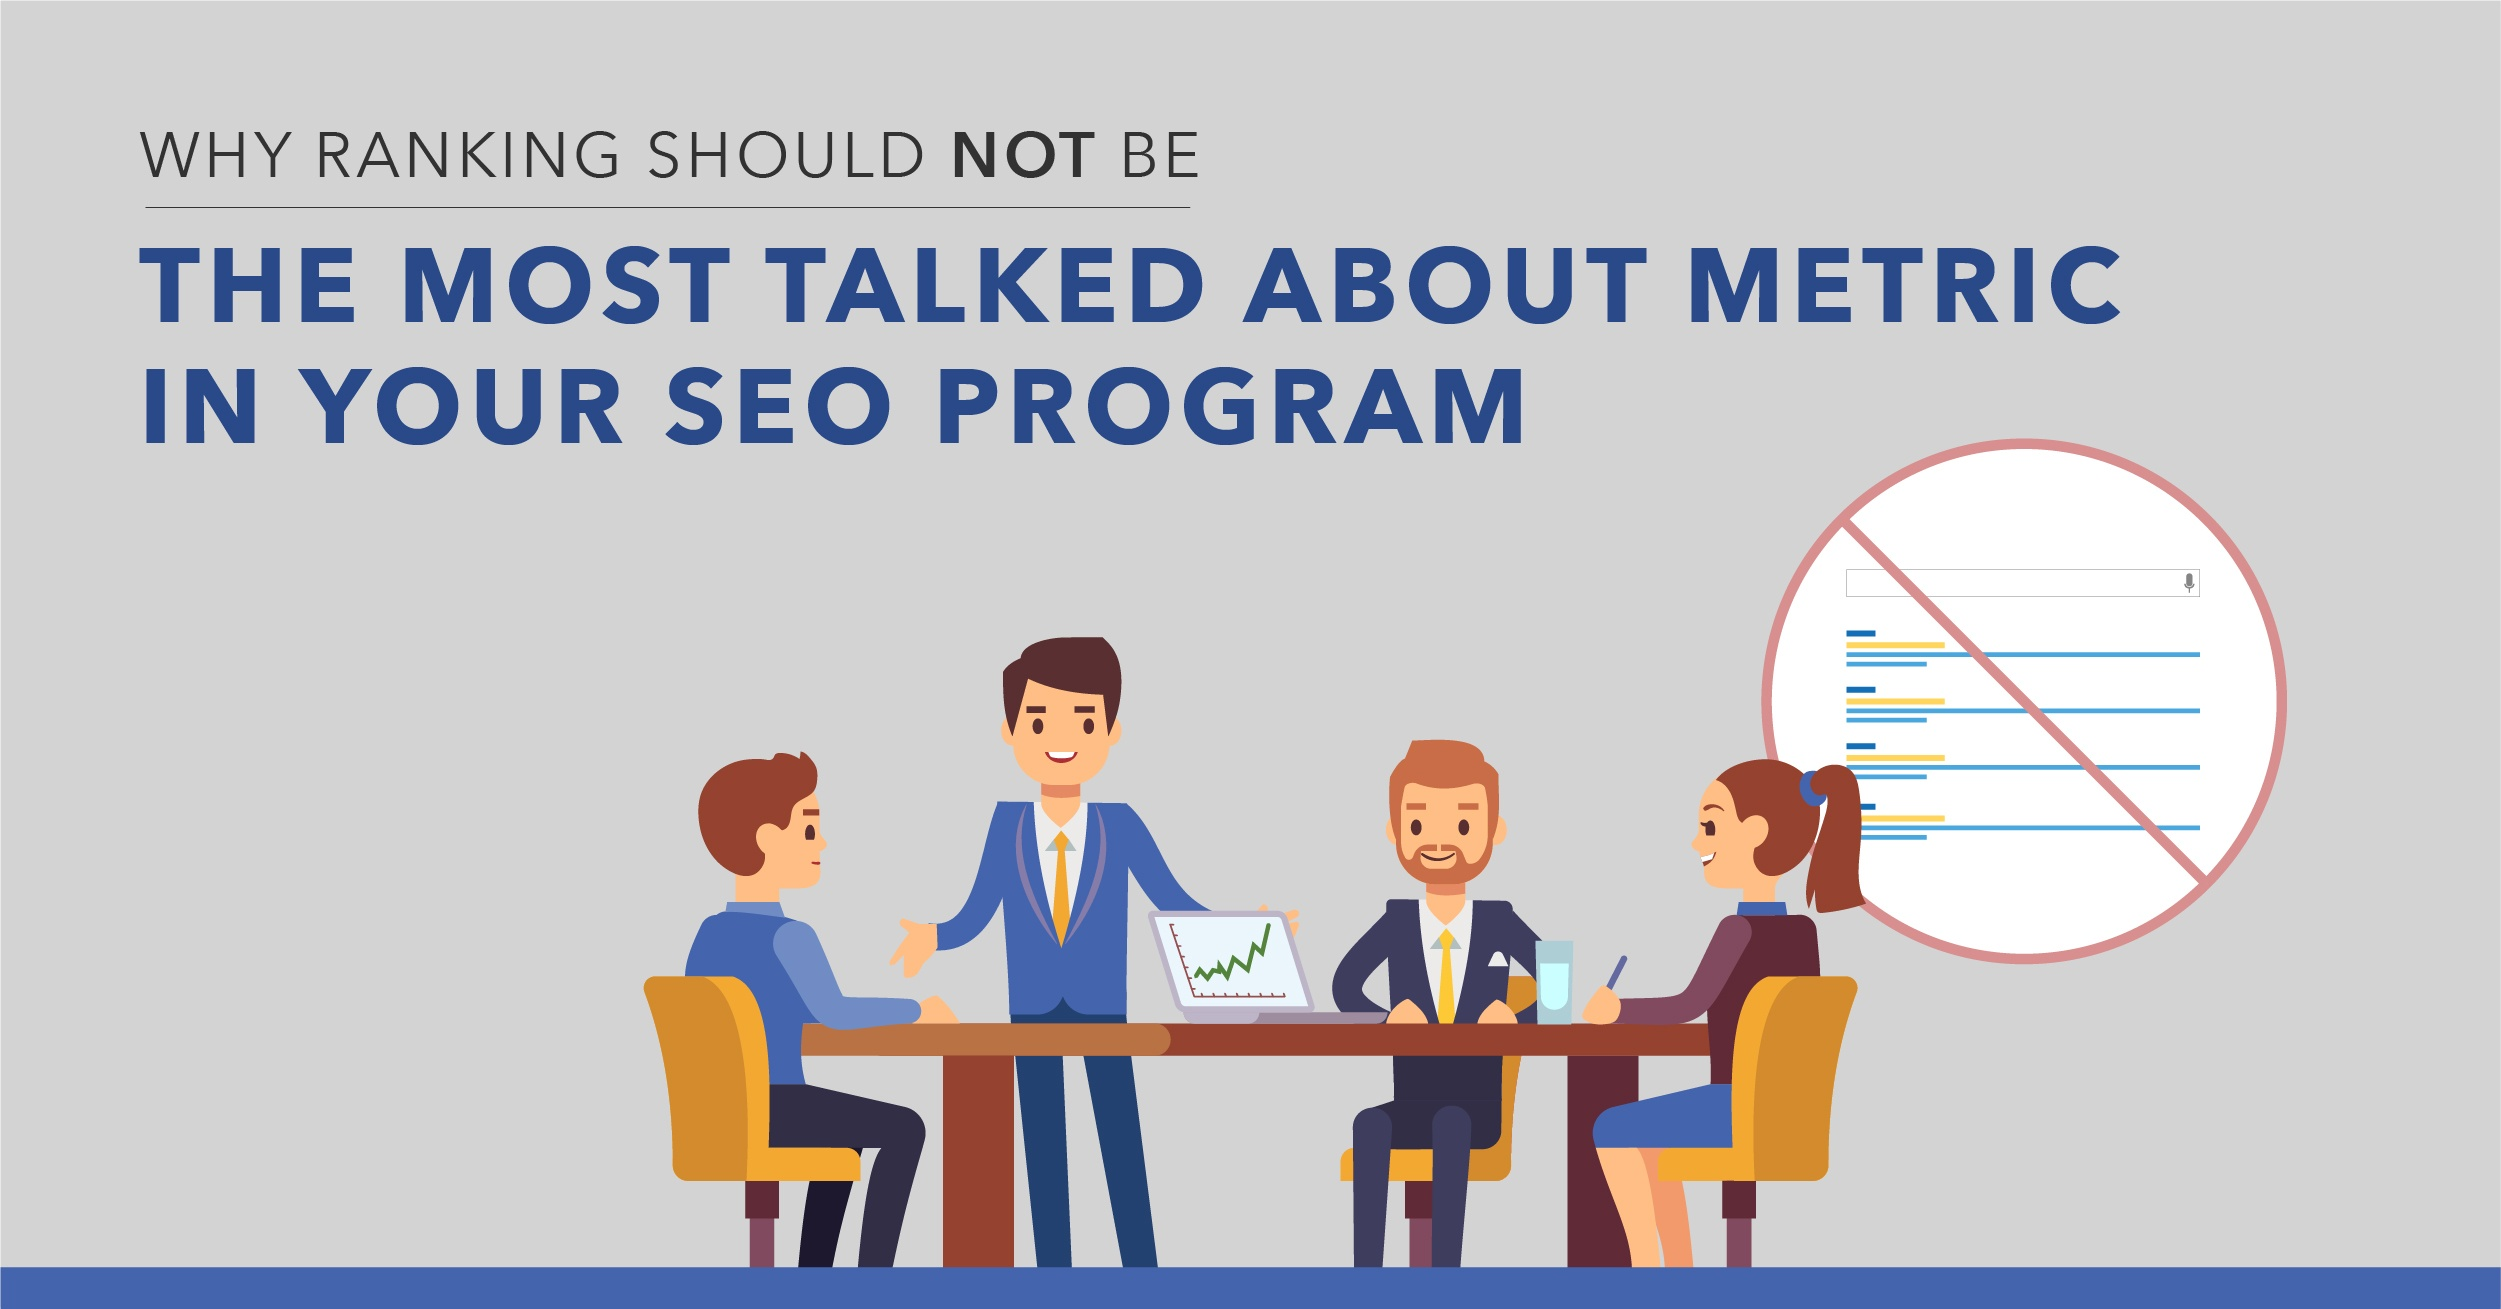 Why Rankings Shouldn't Be the Most Talked About Metric in Your SEO Strategy